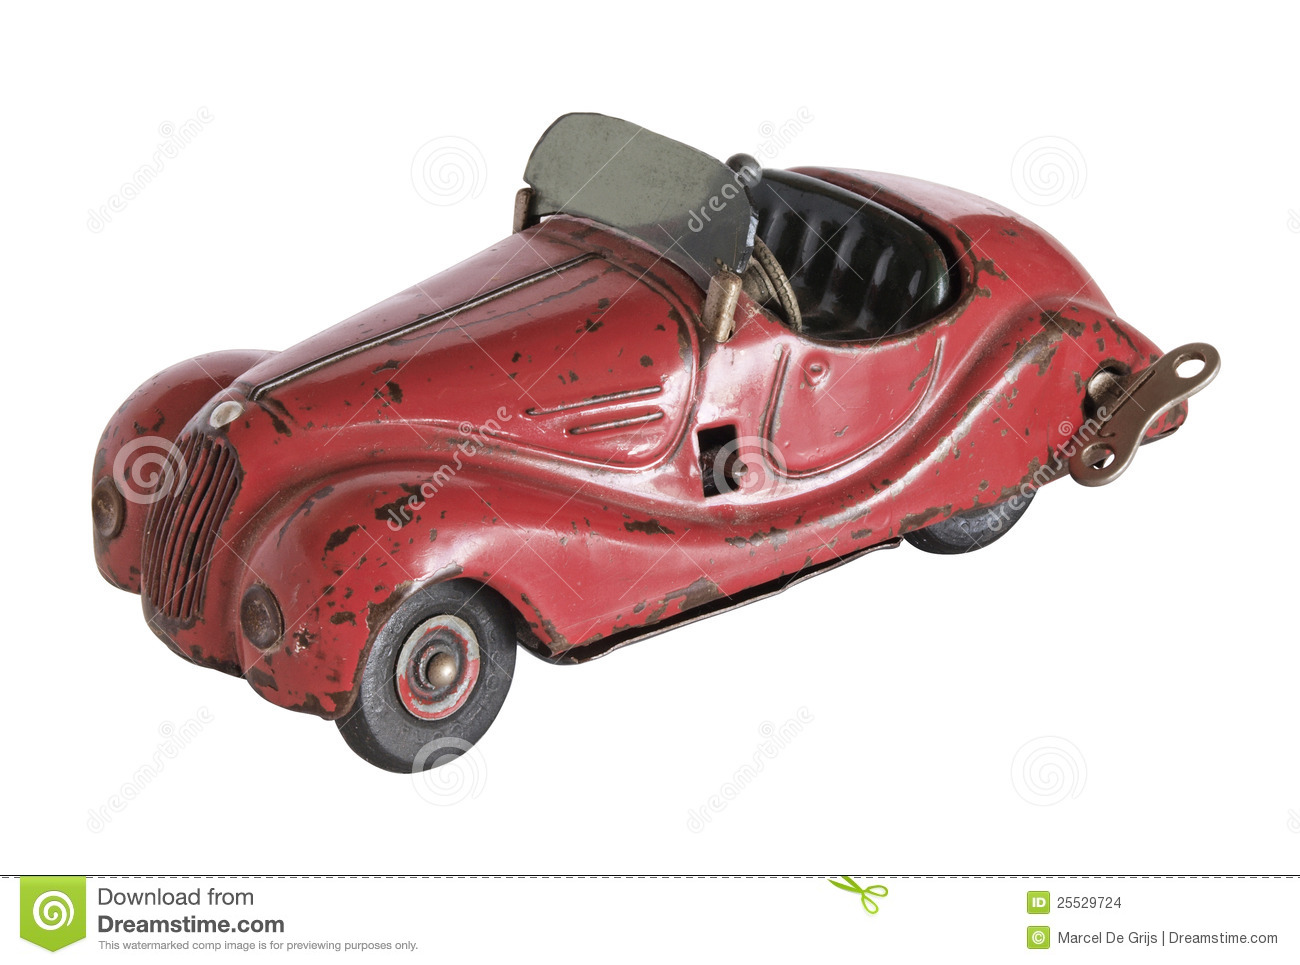 An old vintage toy car isolated on a white background